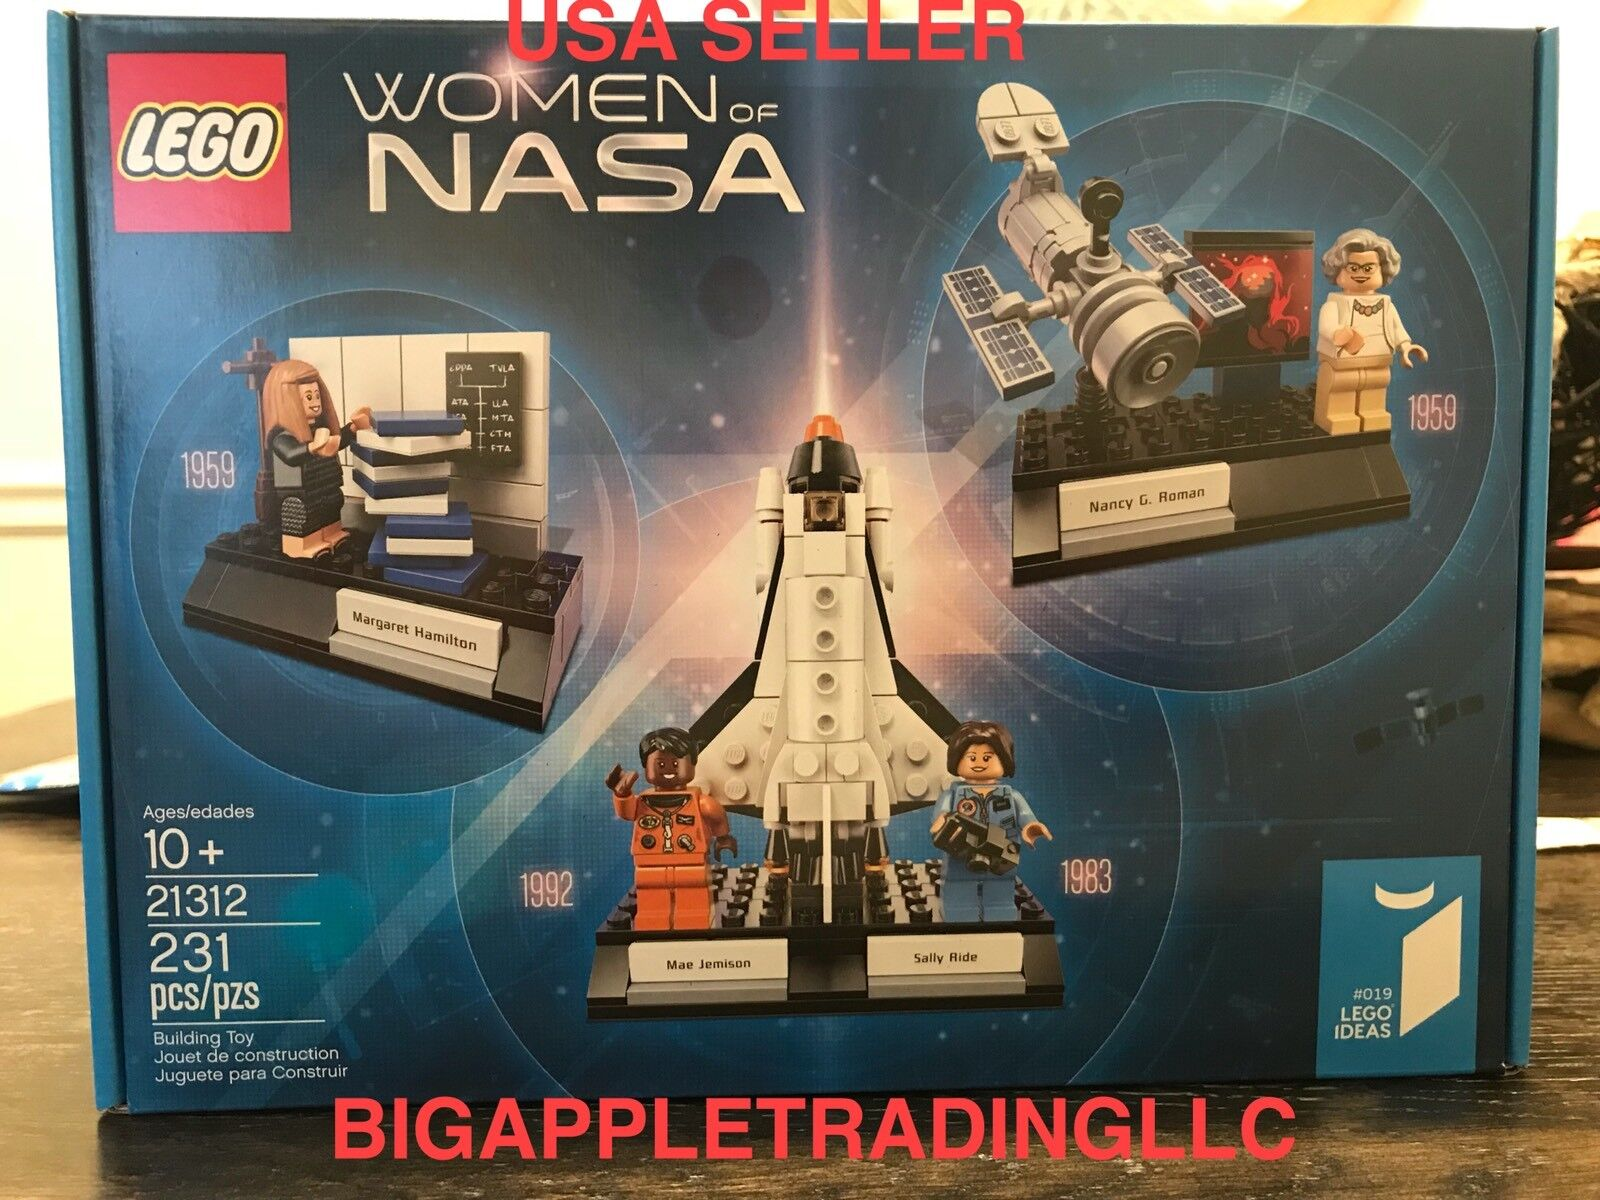 LEGO Damens of NASA Ideas 21312 Female Astronauts - New and Sealed - Ships Fast